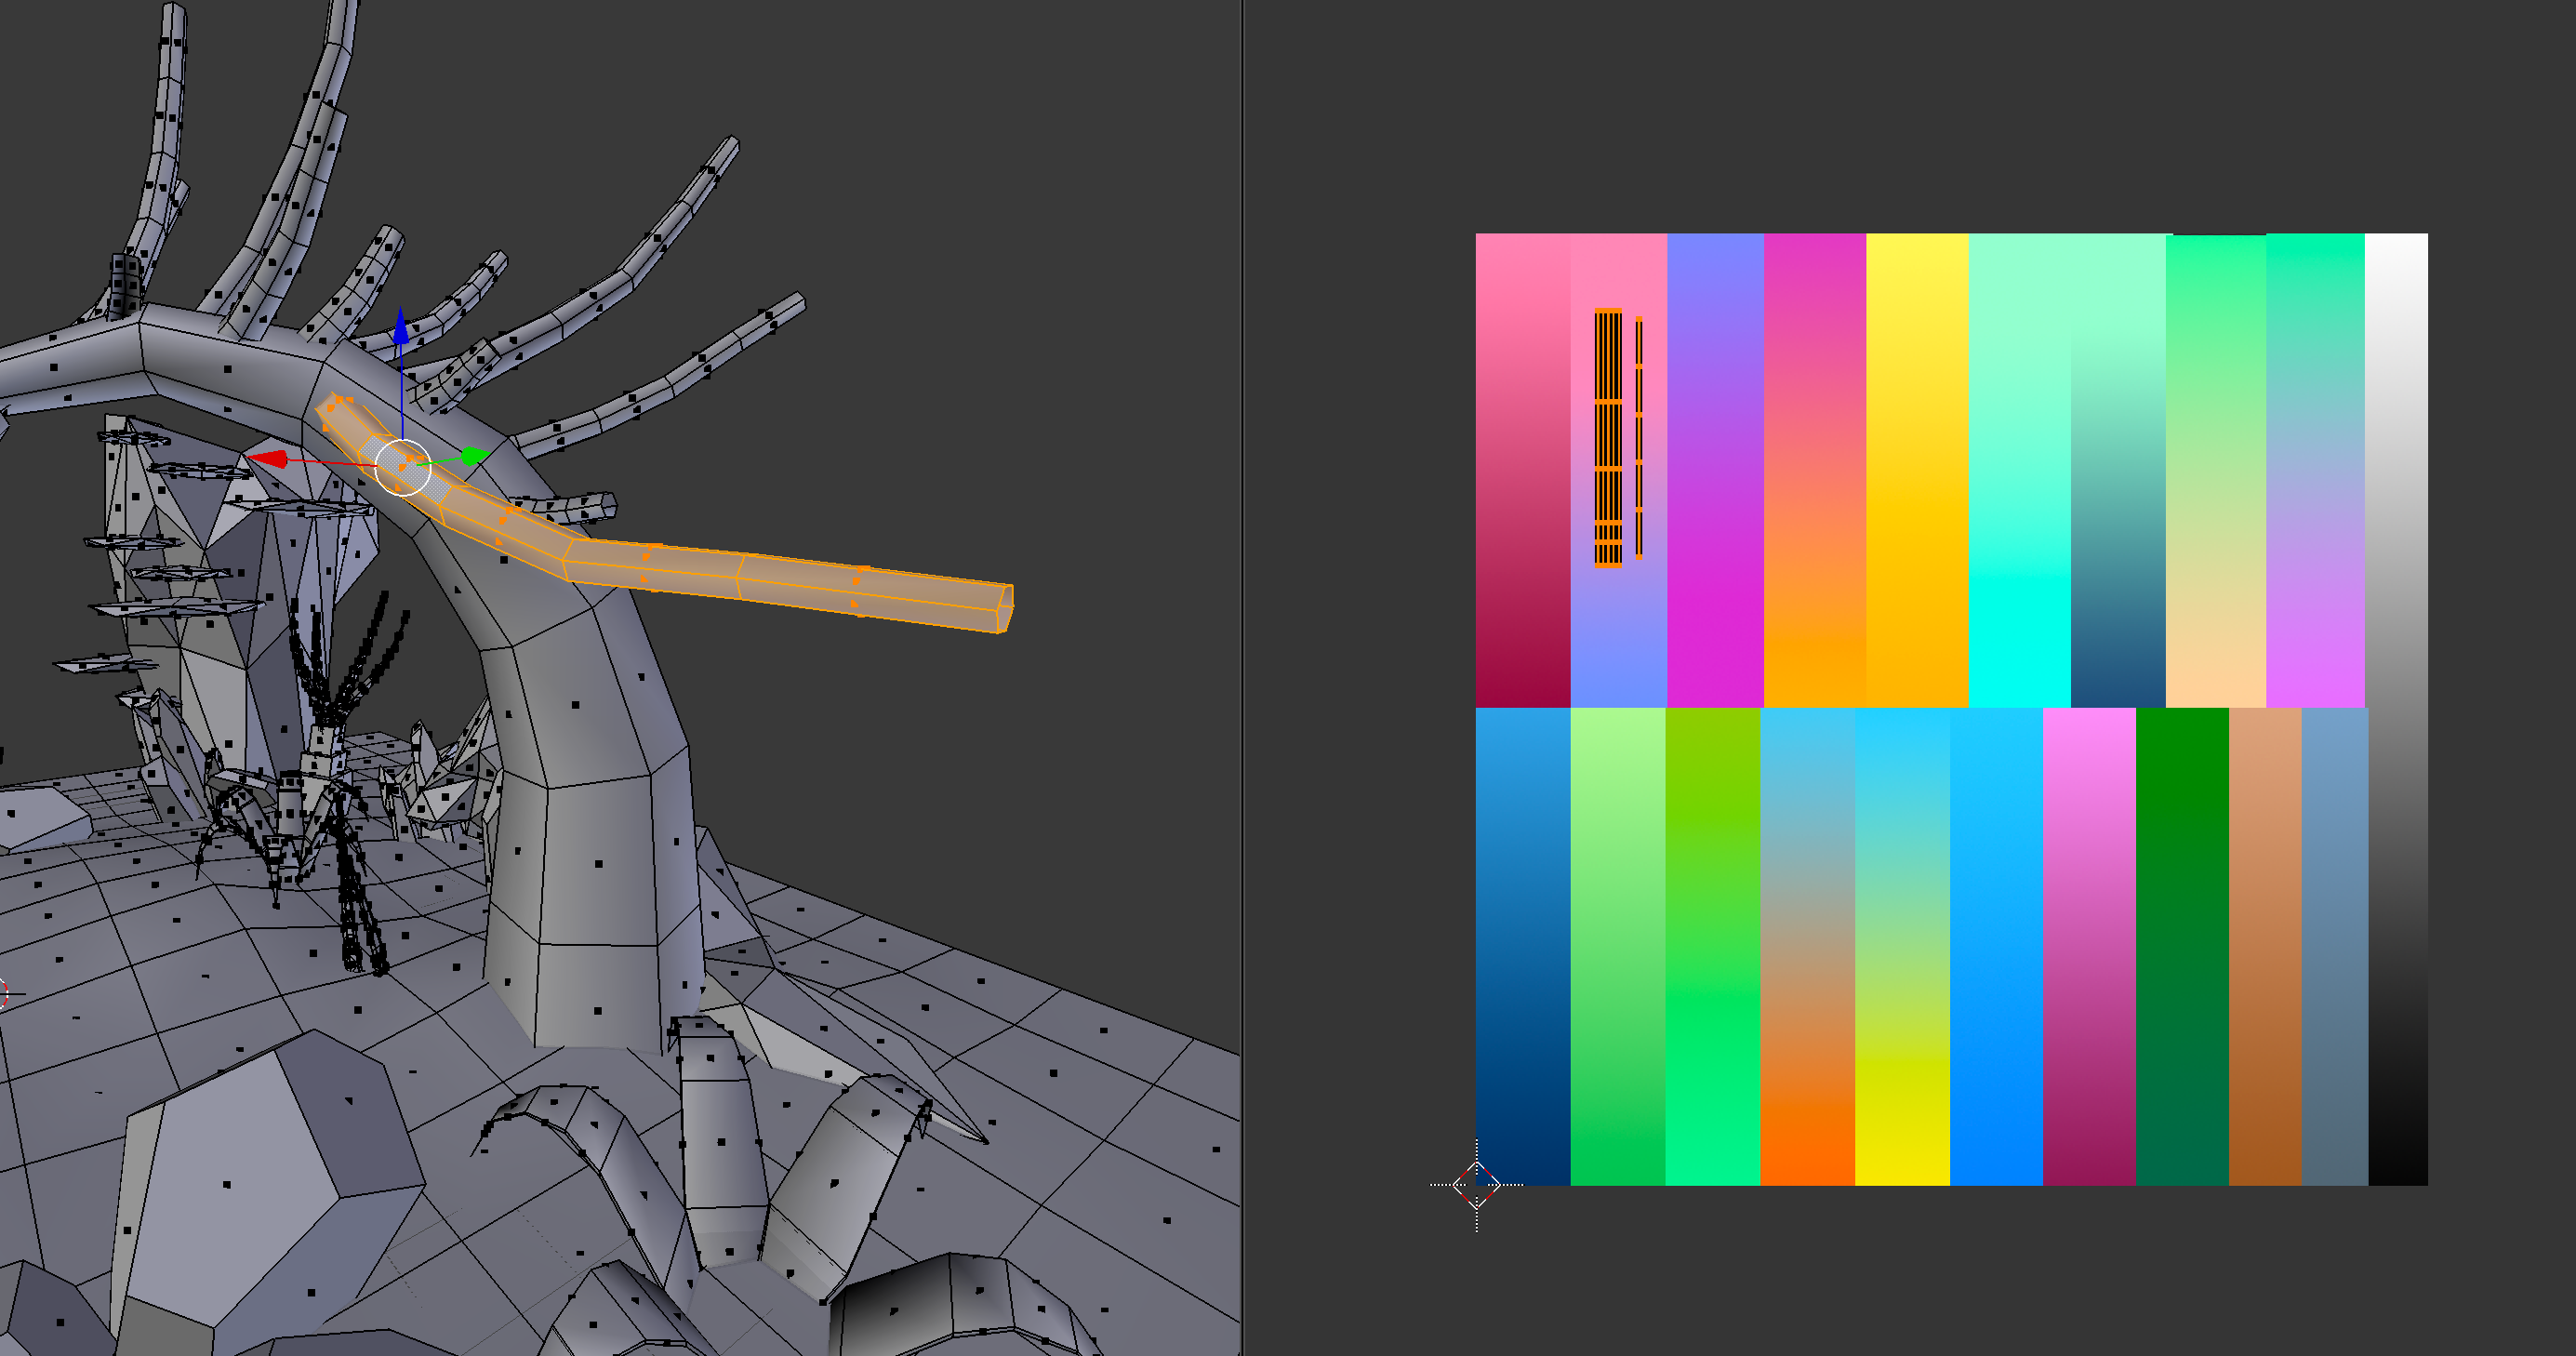 Using Blender to map textures to the models.